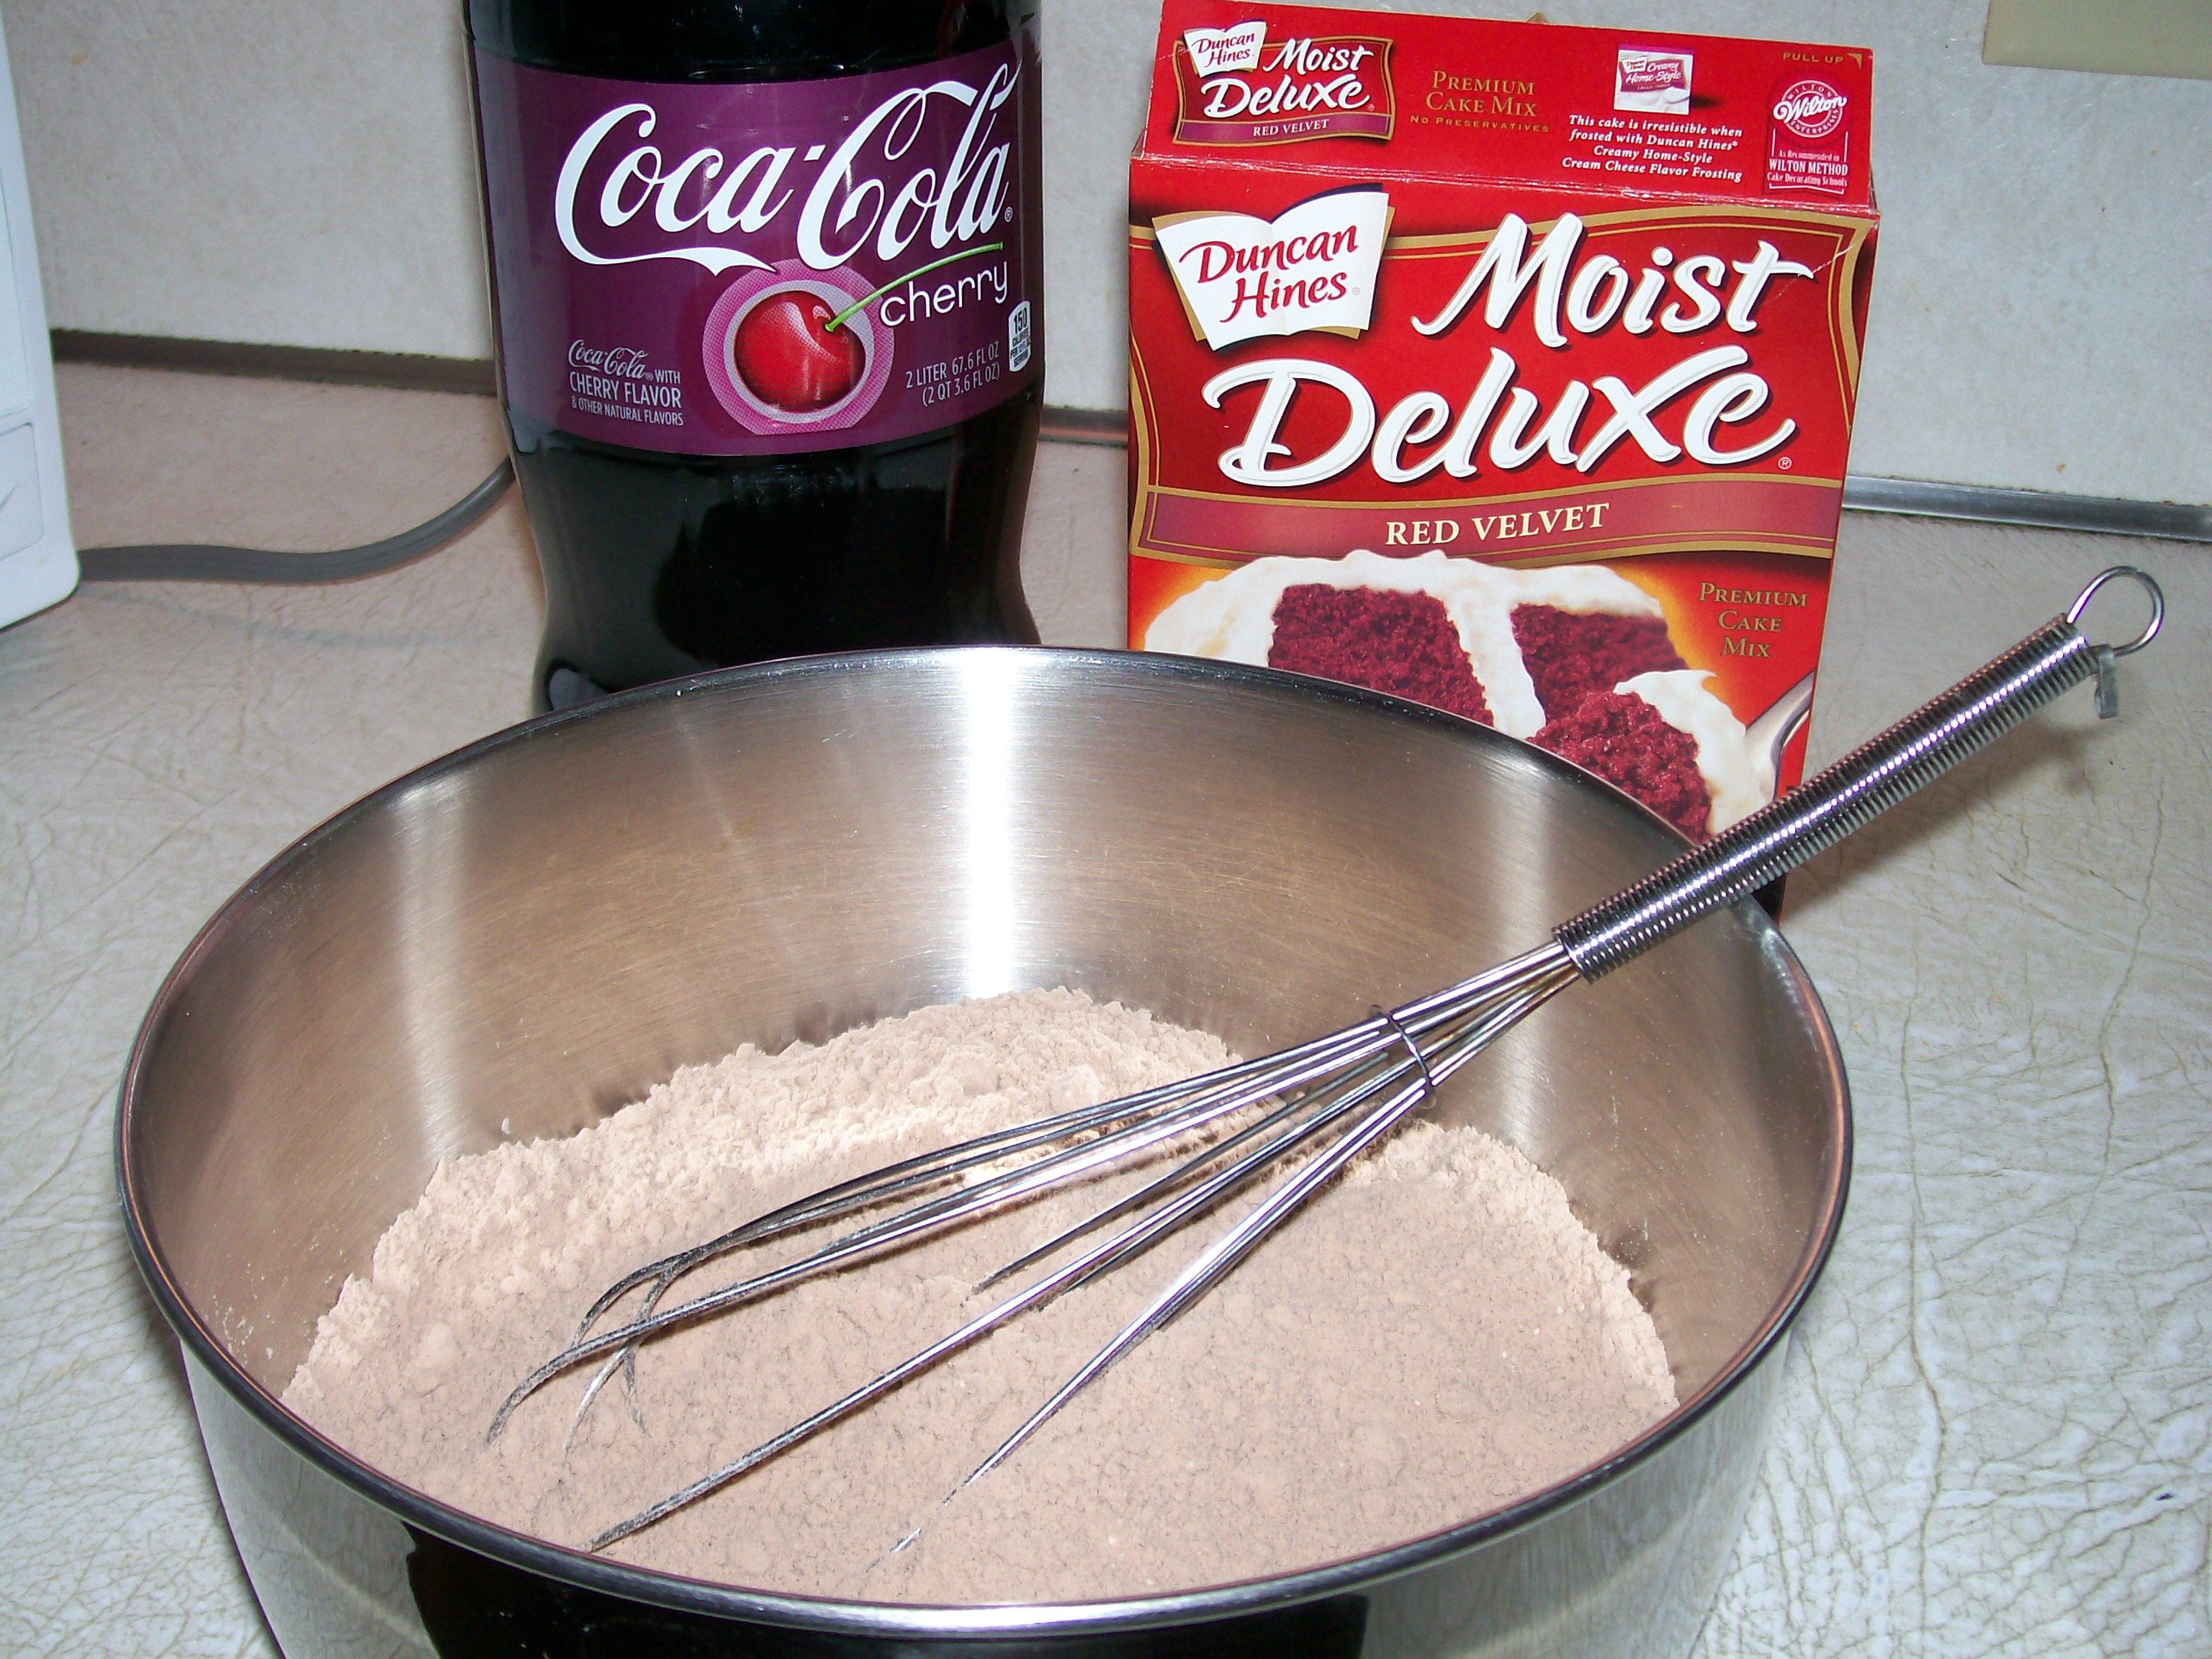 Boxed Cake Mix And A Can Of Soda